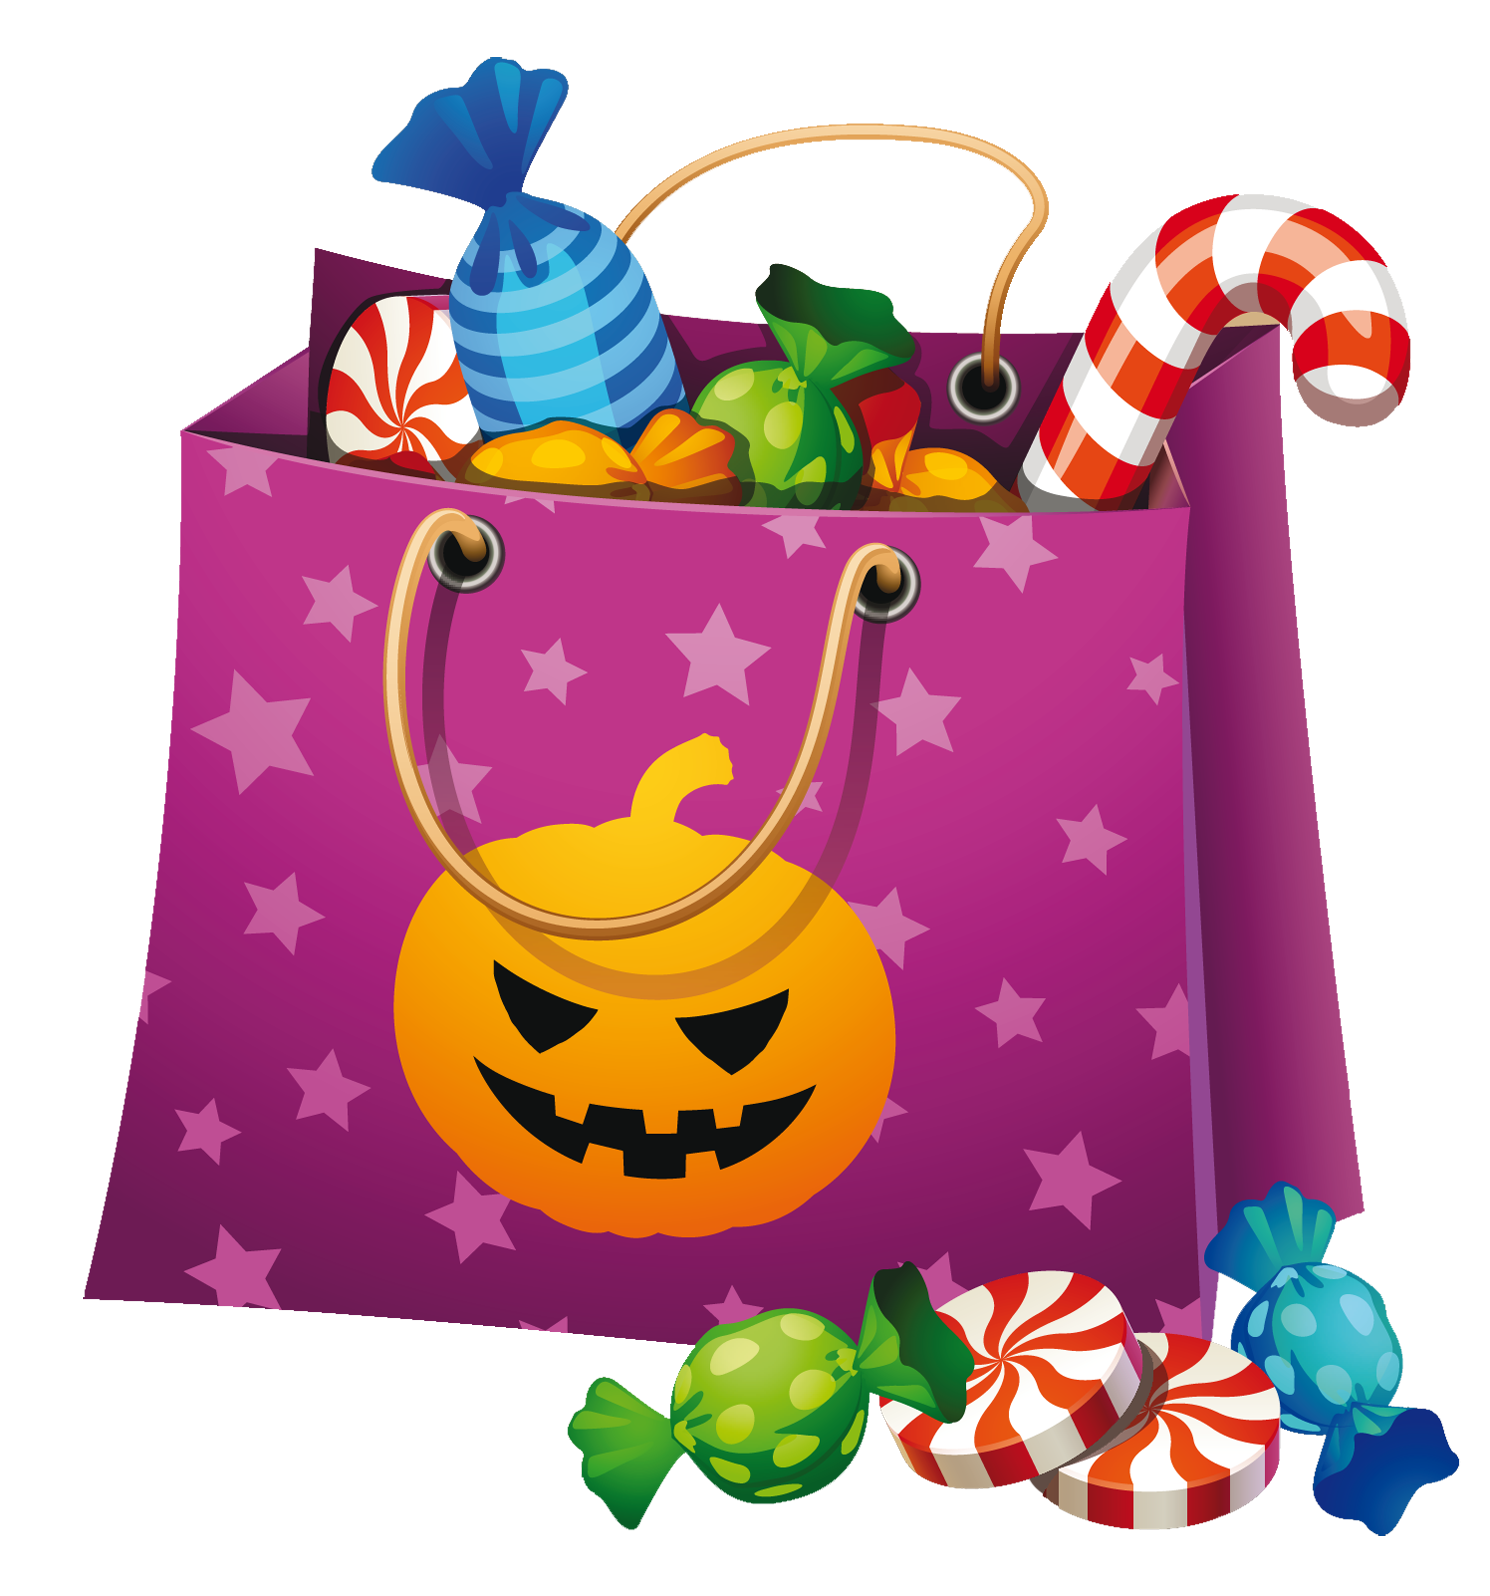 Halloween clipart candy corn clipart royalty free stock Halloween Png Candy Bag Clipart | clip art | Pinterest | Halloween ... clipart royalty free stock